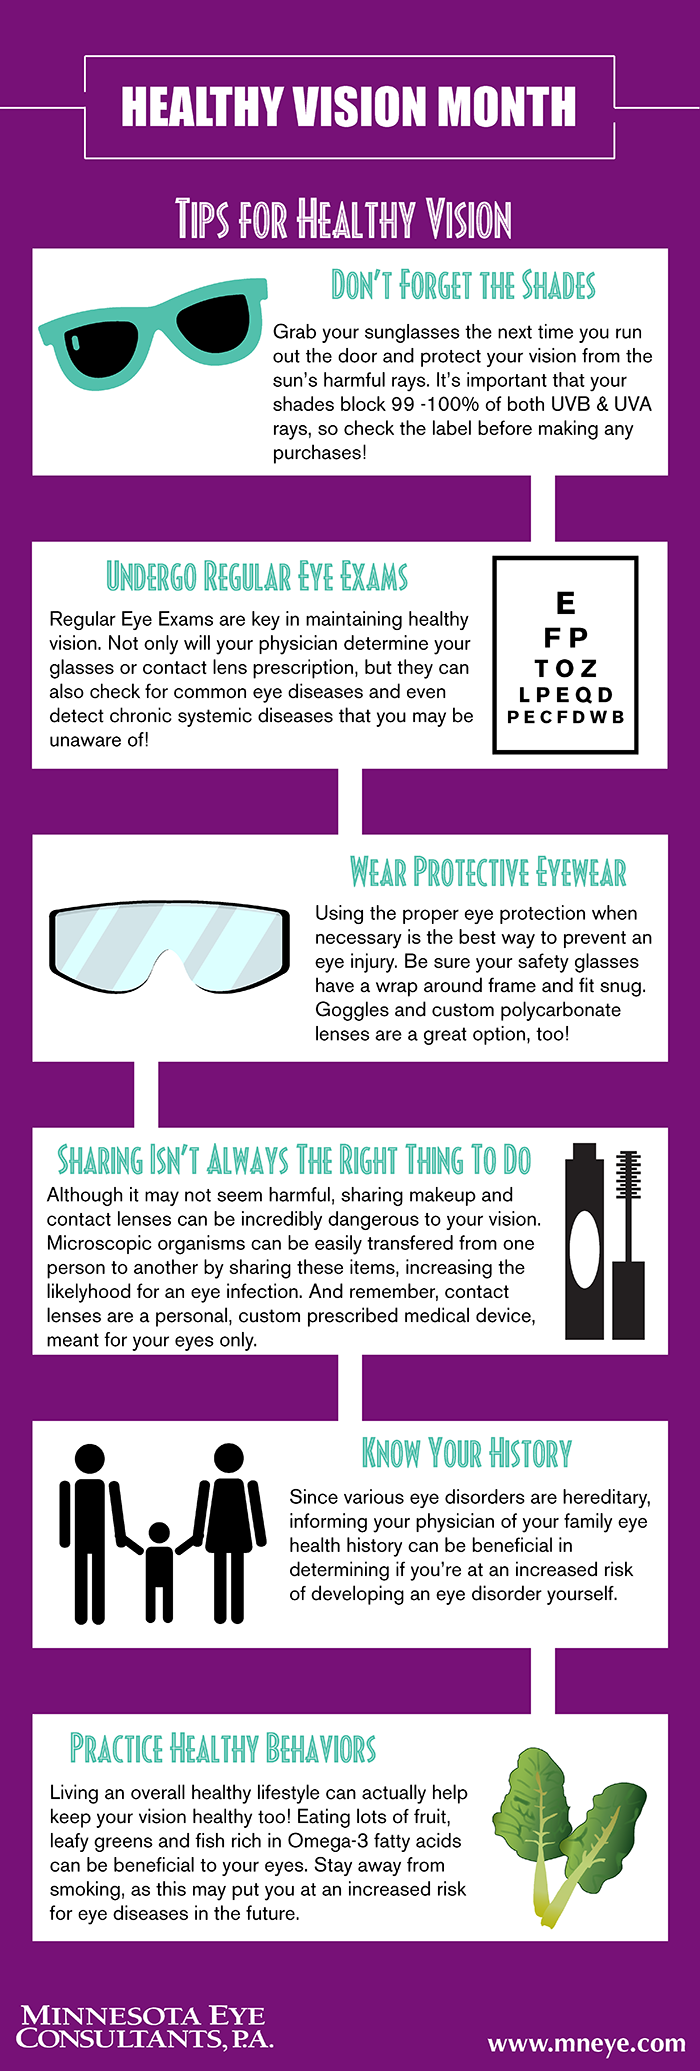 Healthy Vision Month Infographic